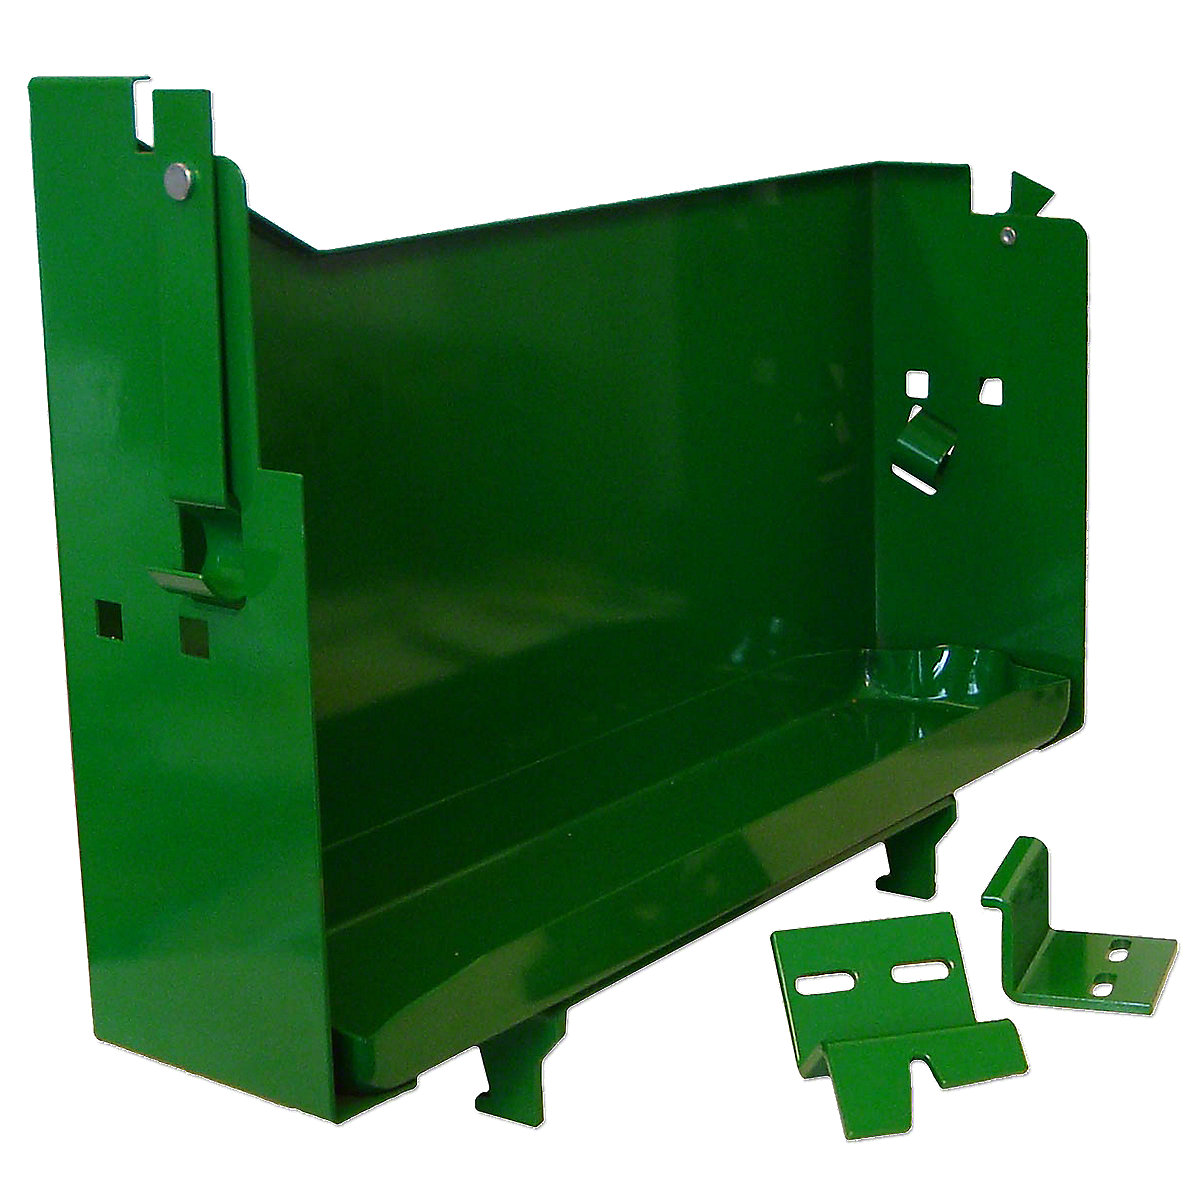 5020 John Deere Battery Box : John deere battery box bing images